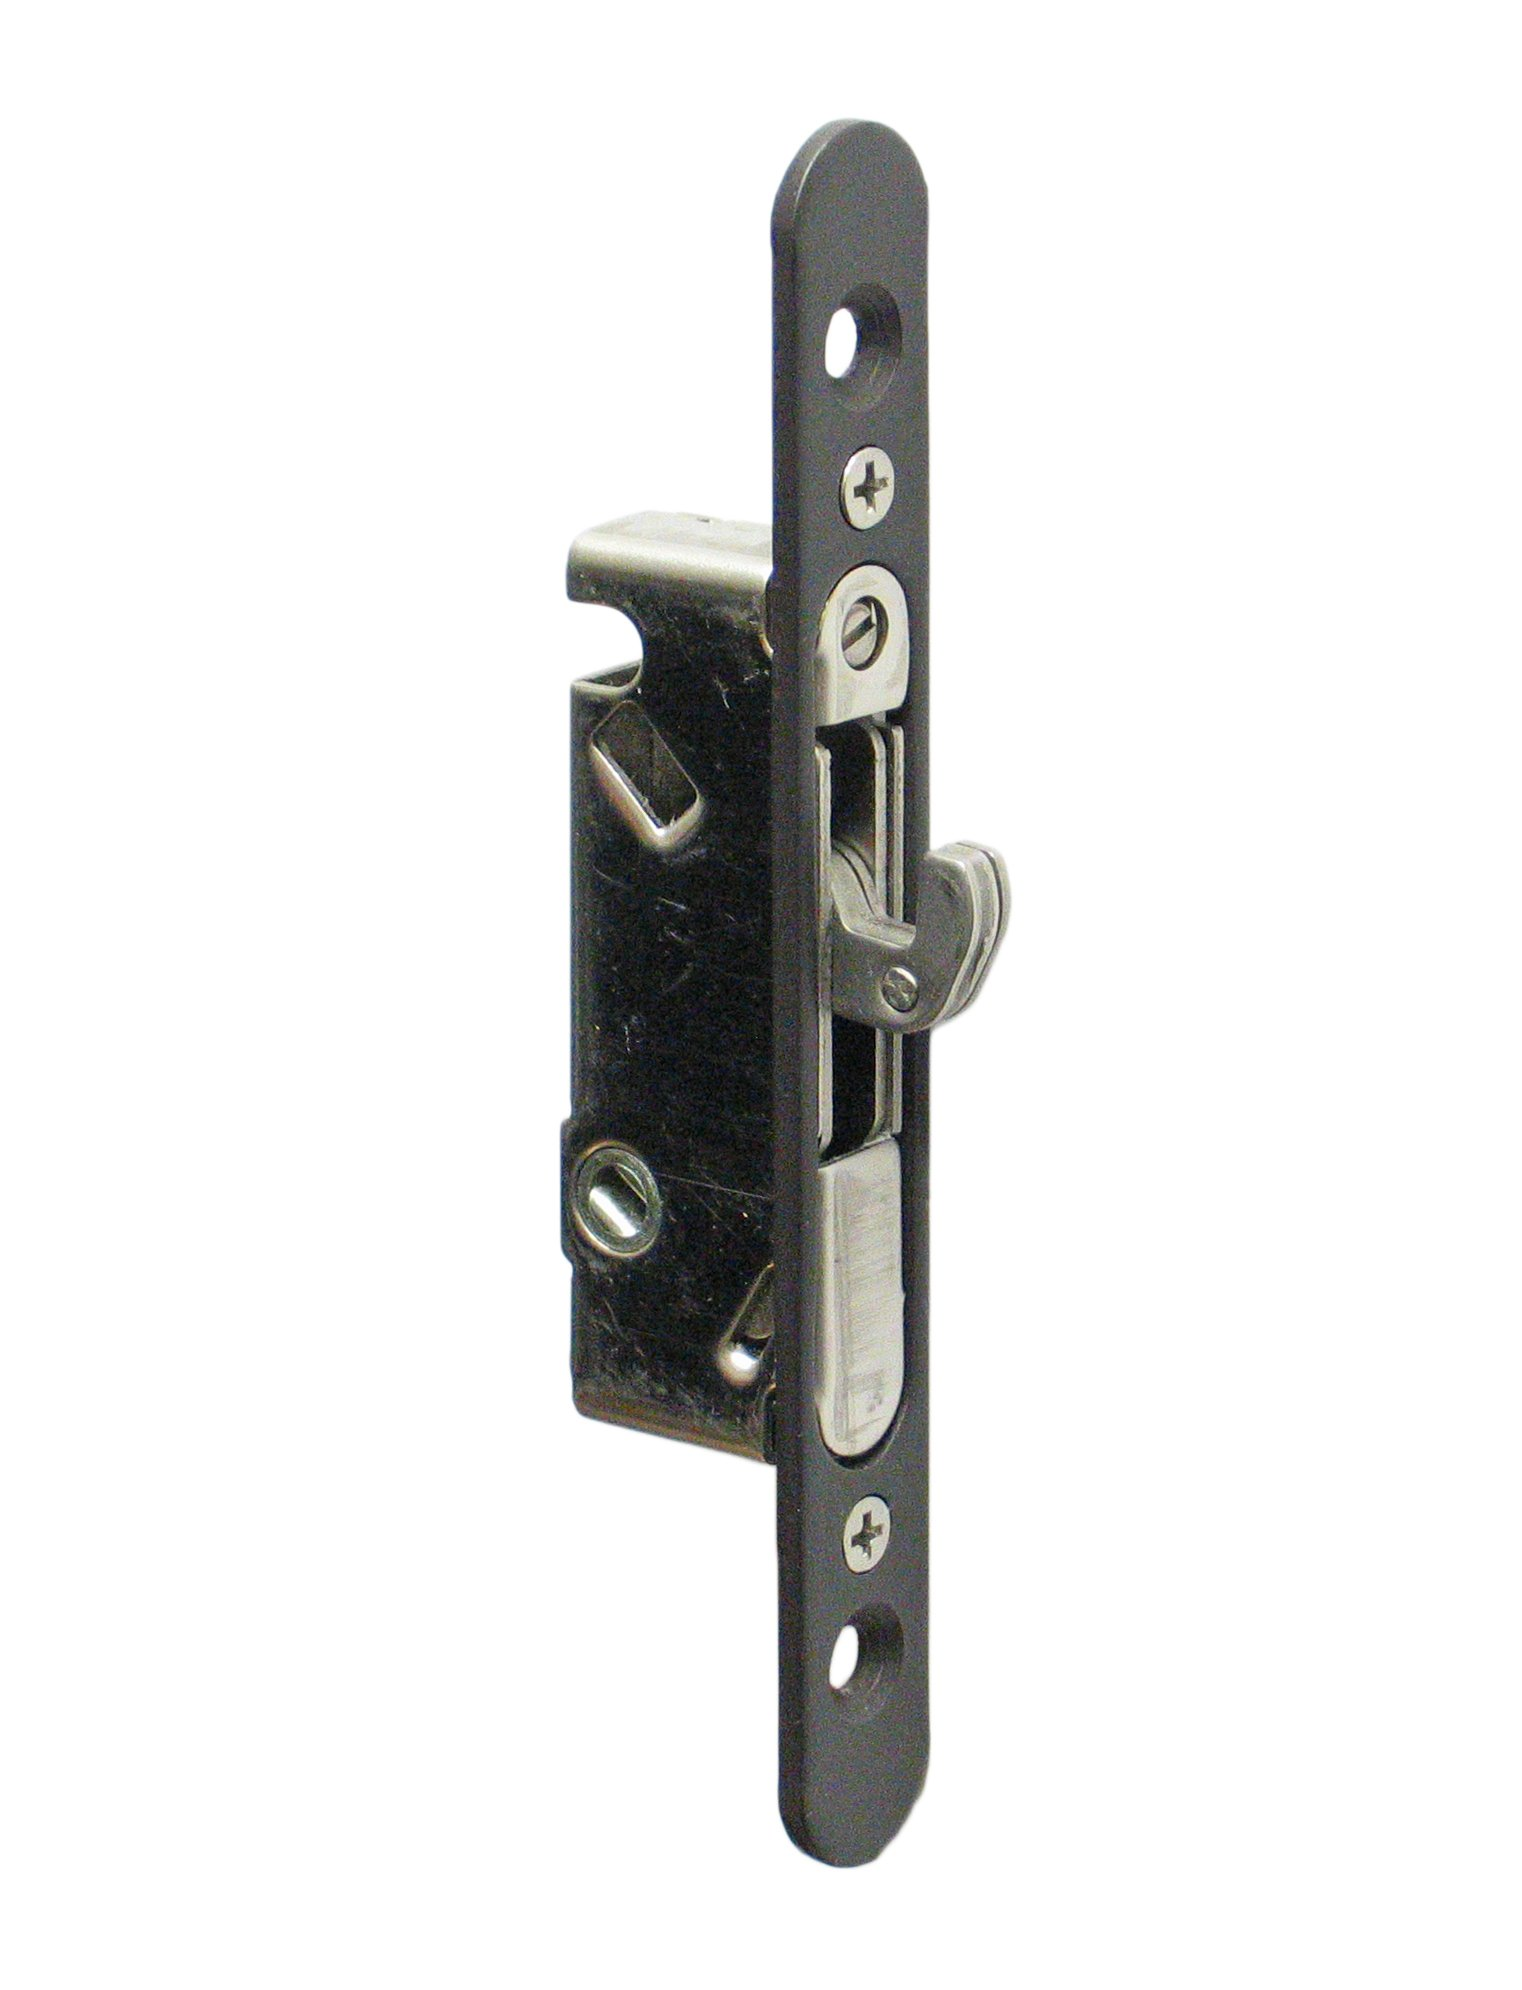 "FPL #3-45-SS Sliding Glass Door Replacement Mortise Lock with Adapter Plate, 4-5/8"" Screw Holes, 45 Degree Keyway, Stainless Steel- Oil Rubbed Bronze Finish"